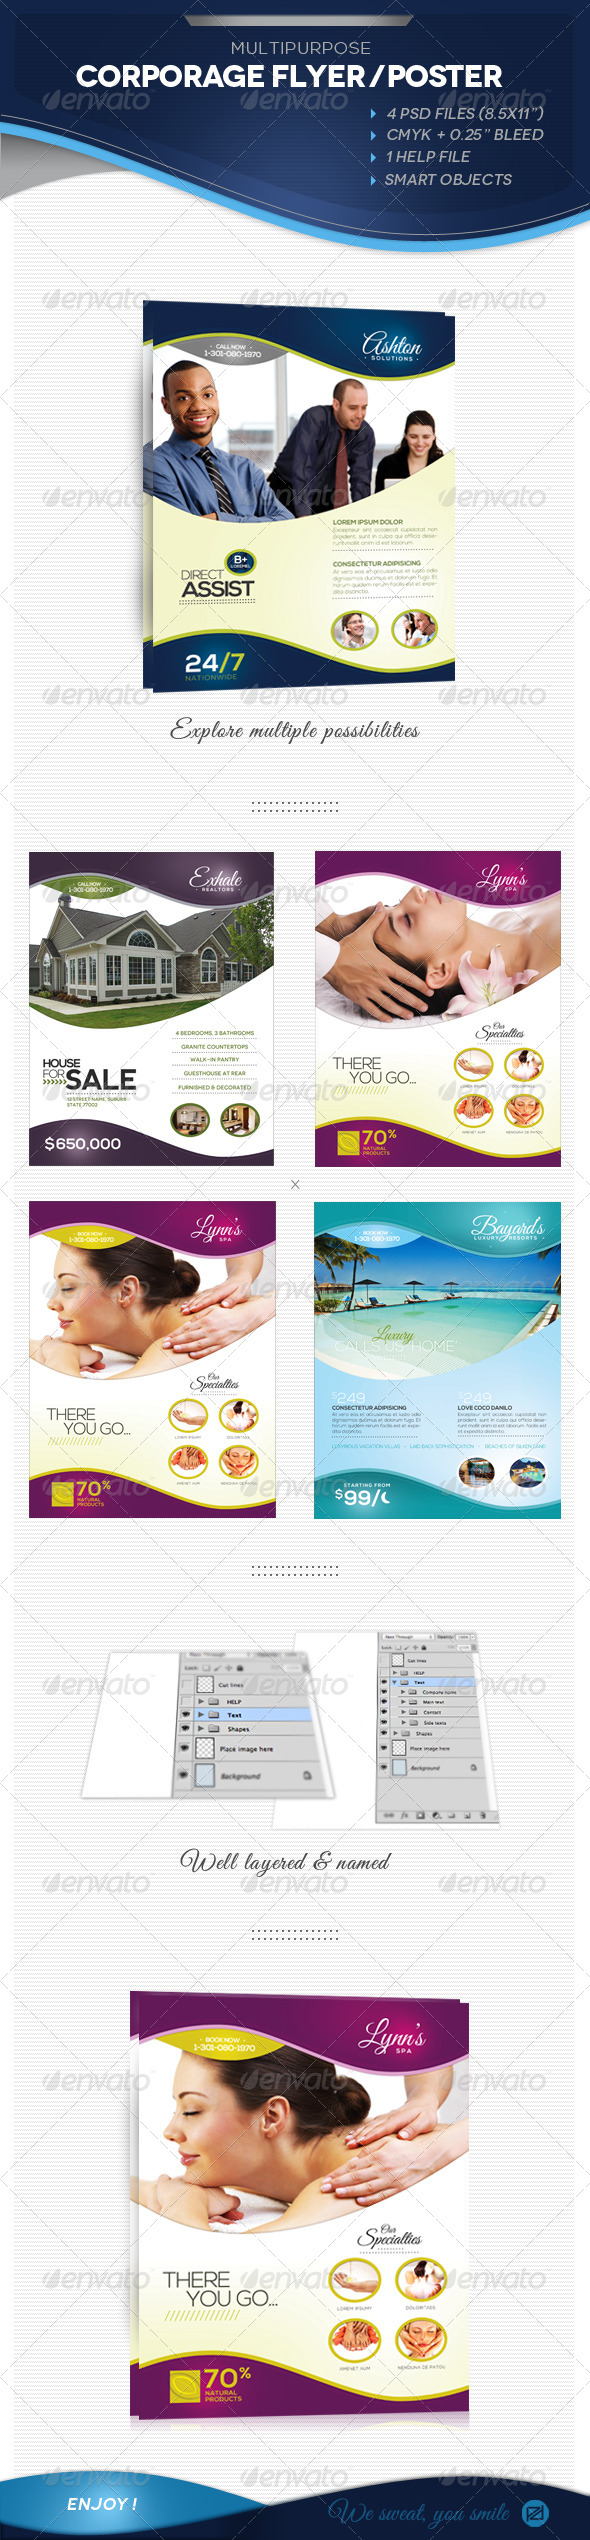 GraphicRiver Multipurpose Corporate Flyer AD Poster 4453746